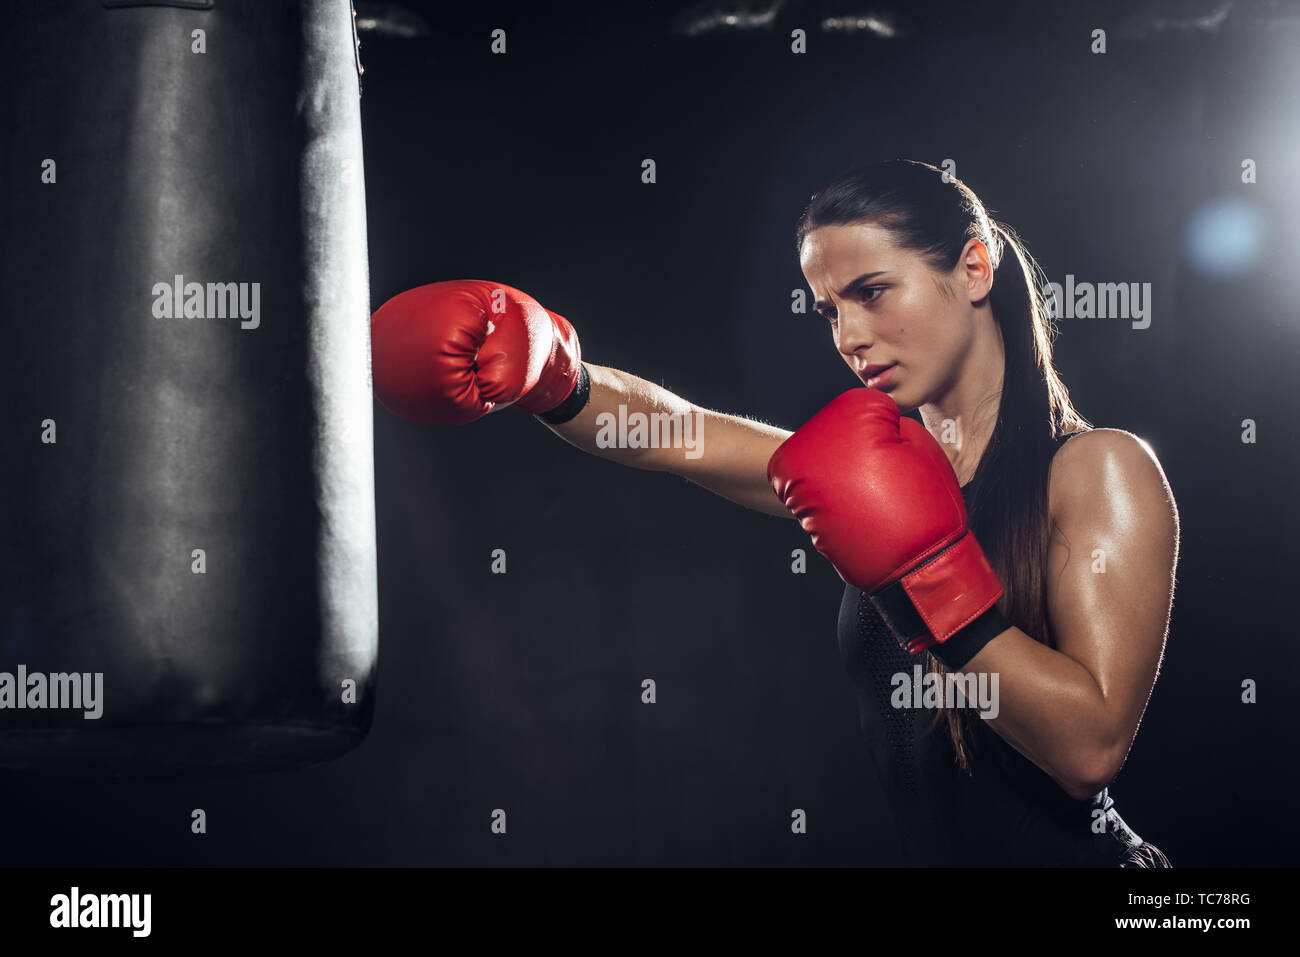 Female boxer in red boxing gloves training with punching bag on black - Stock Image